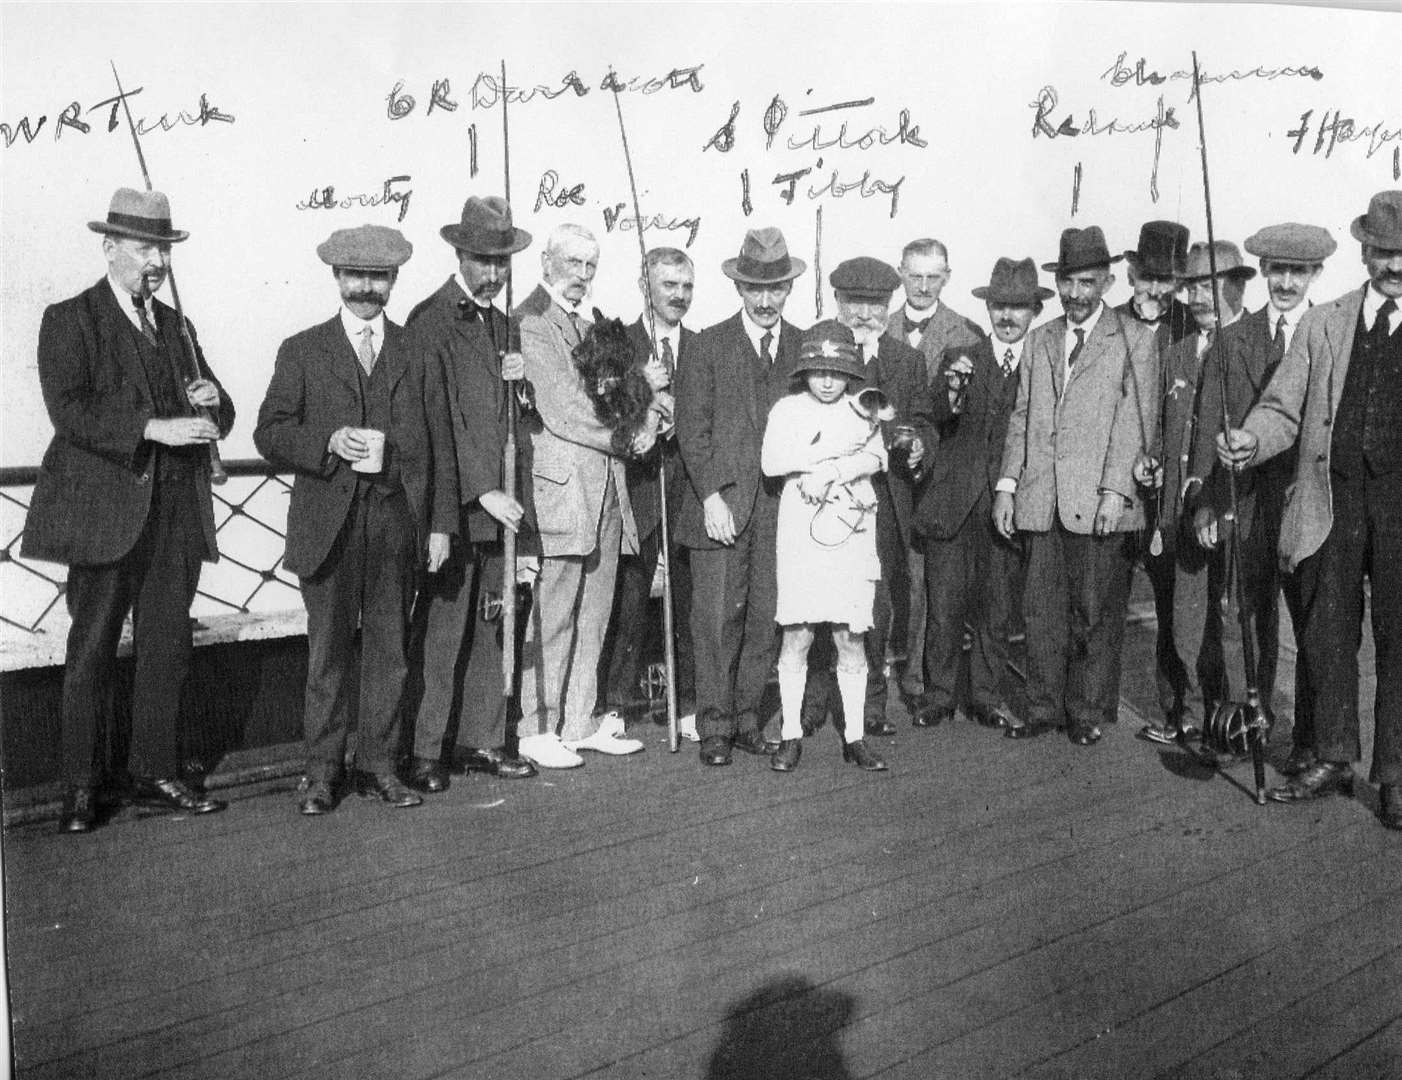 William Turk (on the left) with fellow tradesmen on Deal Pier